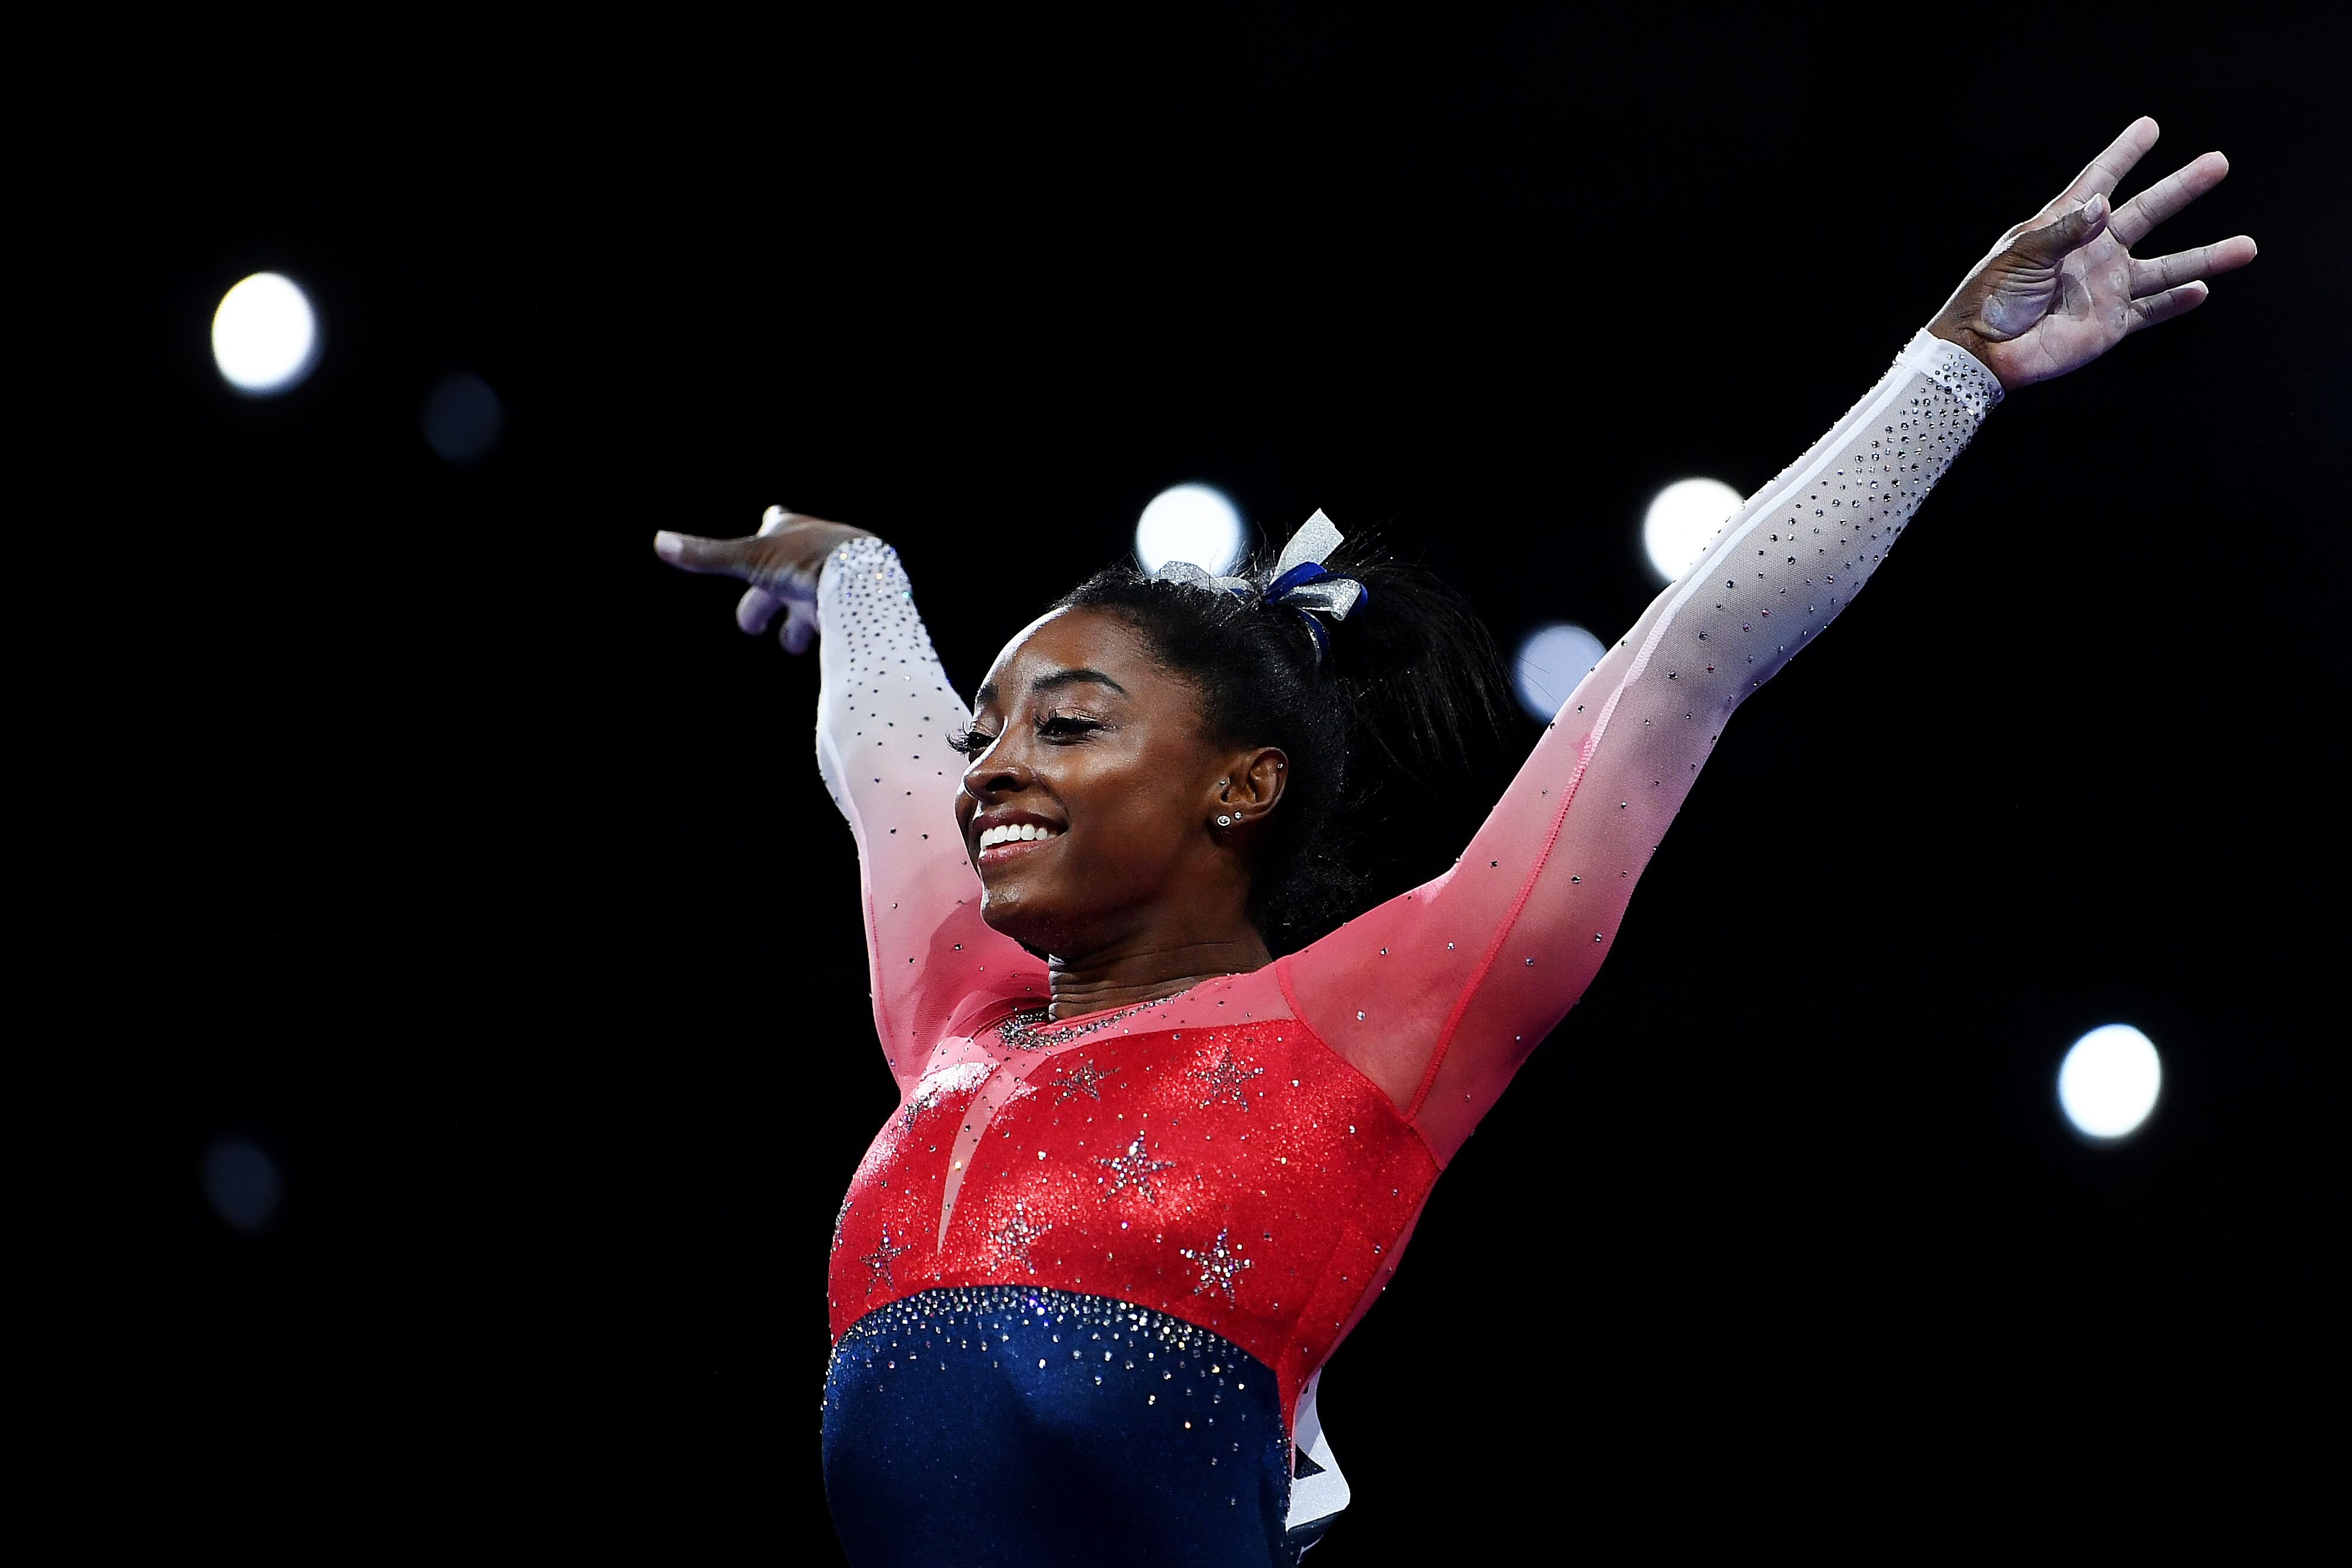 Simone Biles during the FIG Artistic Gymnastics World Championships on October 08, 2019. | Photo: Getty Images